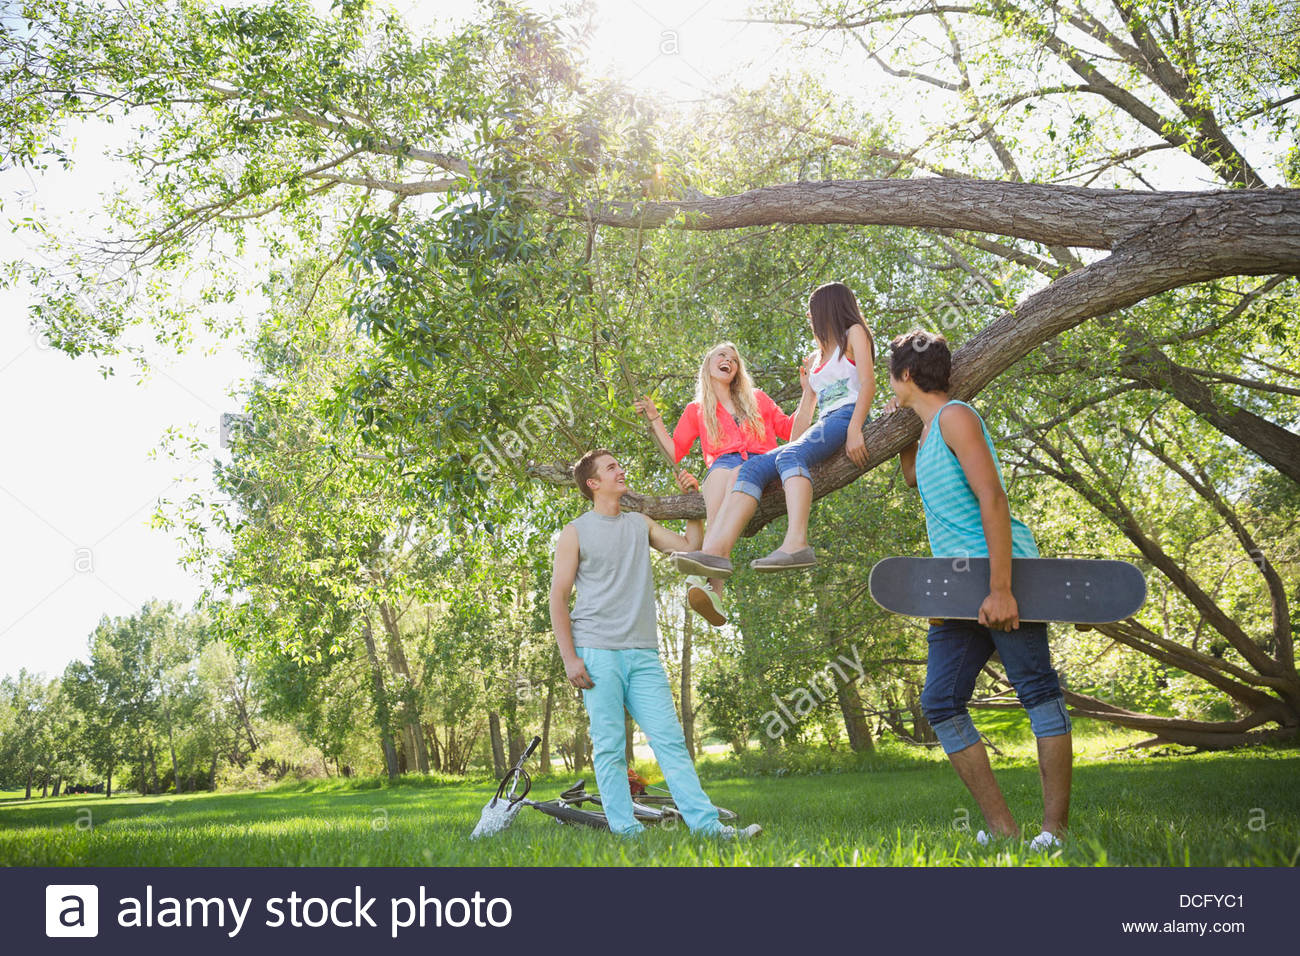 Teenage friends spending time in a park - Stock Image